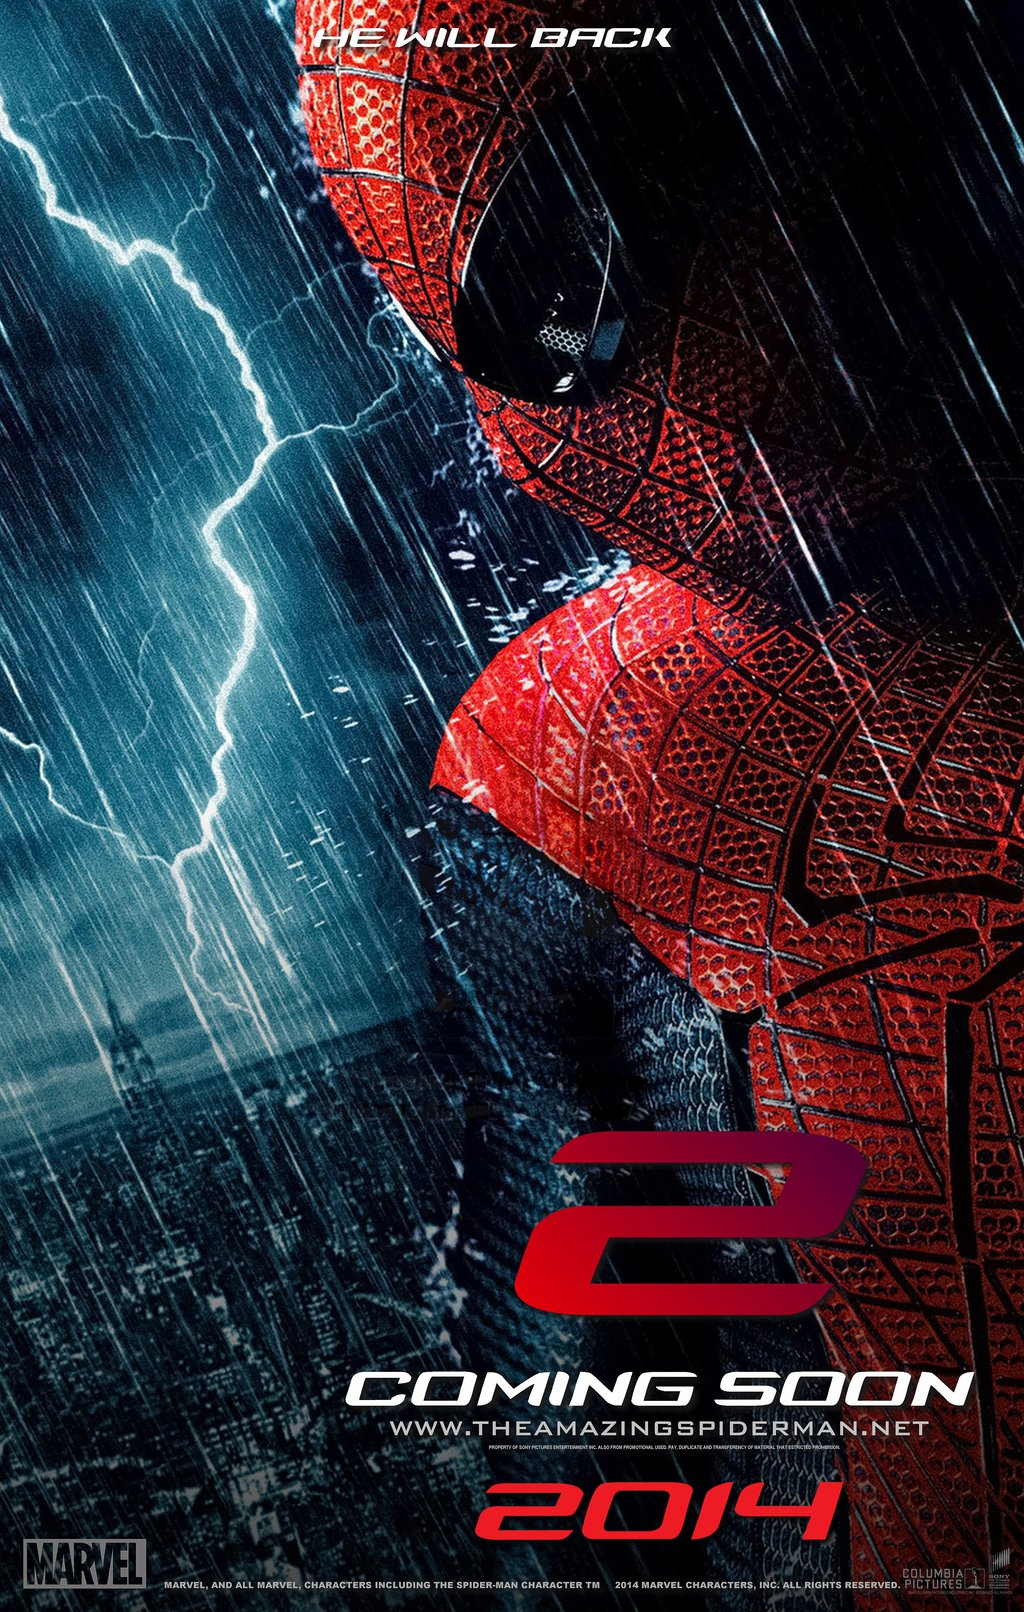 Movie The Amazing Spider Man 2 Poster | Pakistan.Jobz.pk